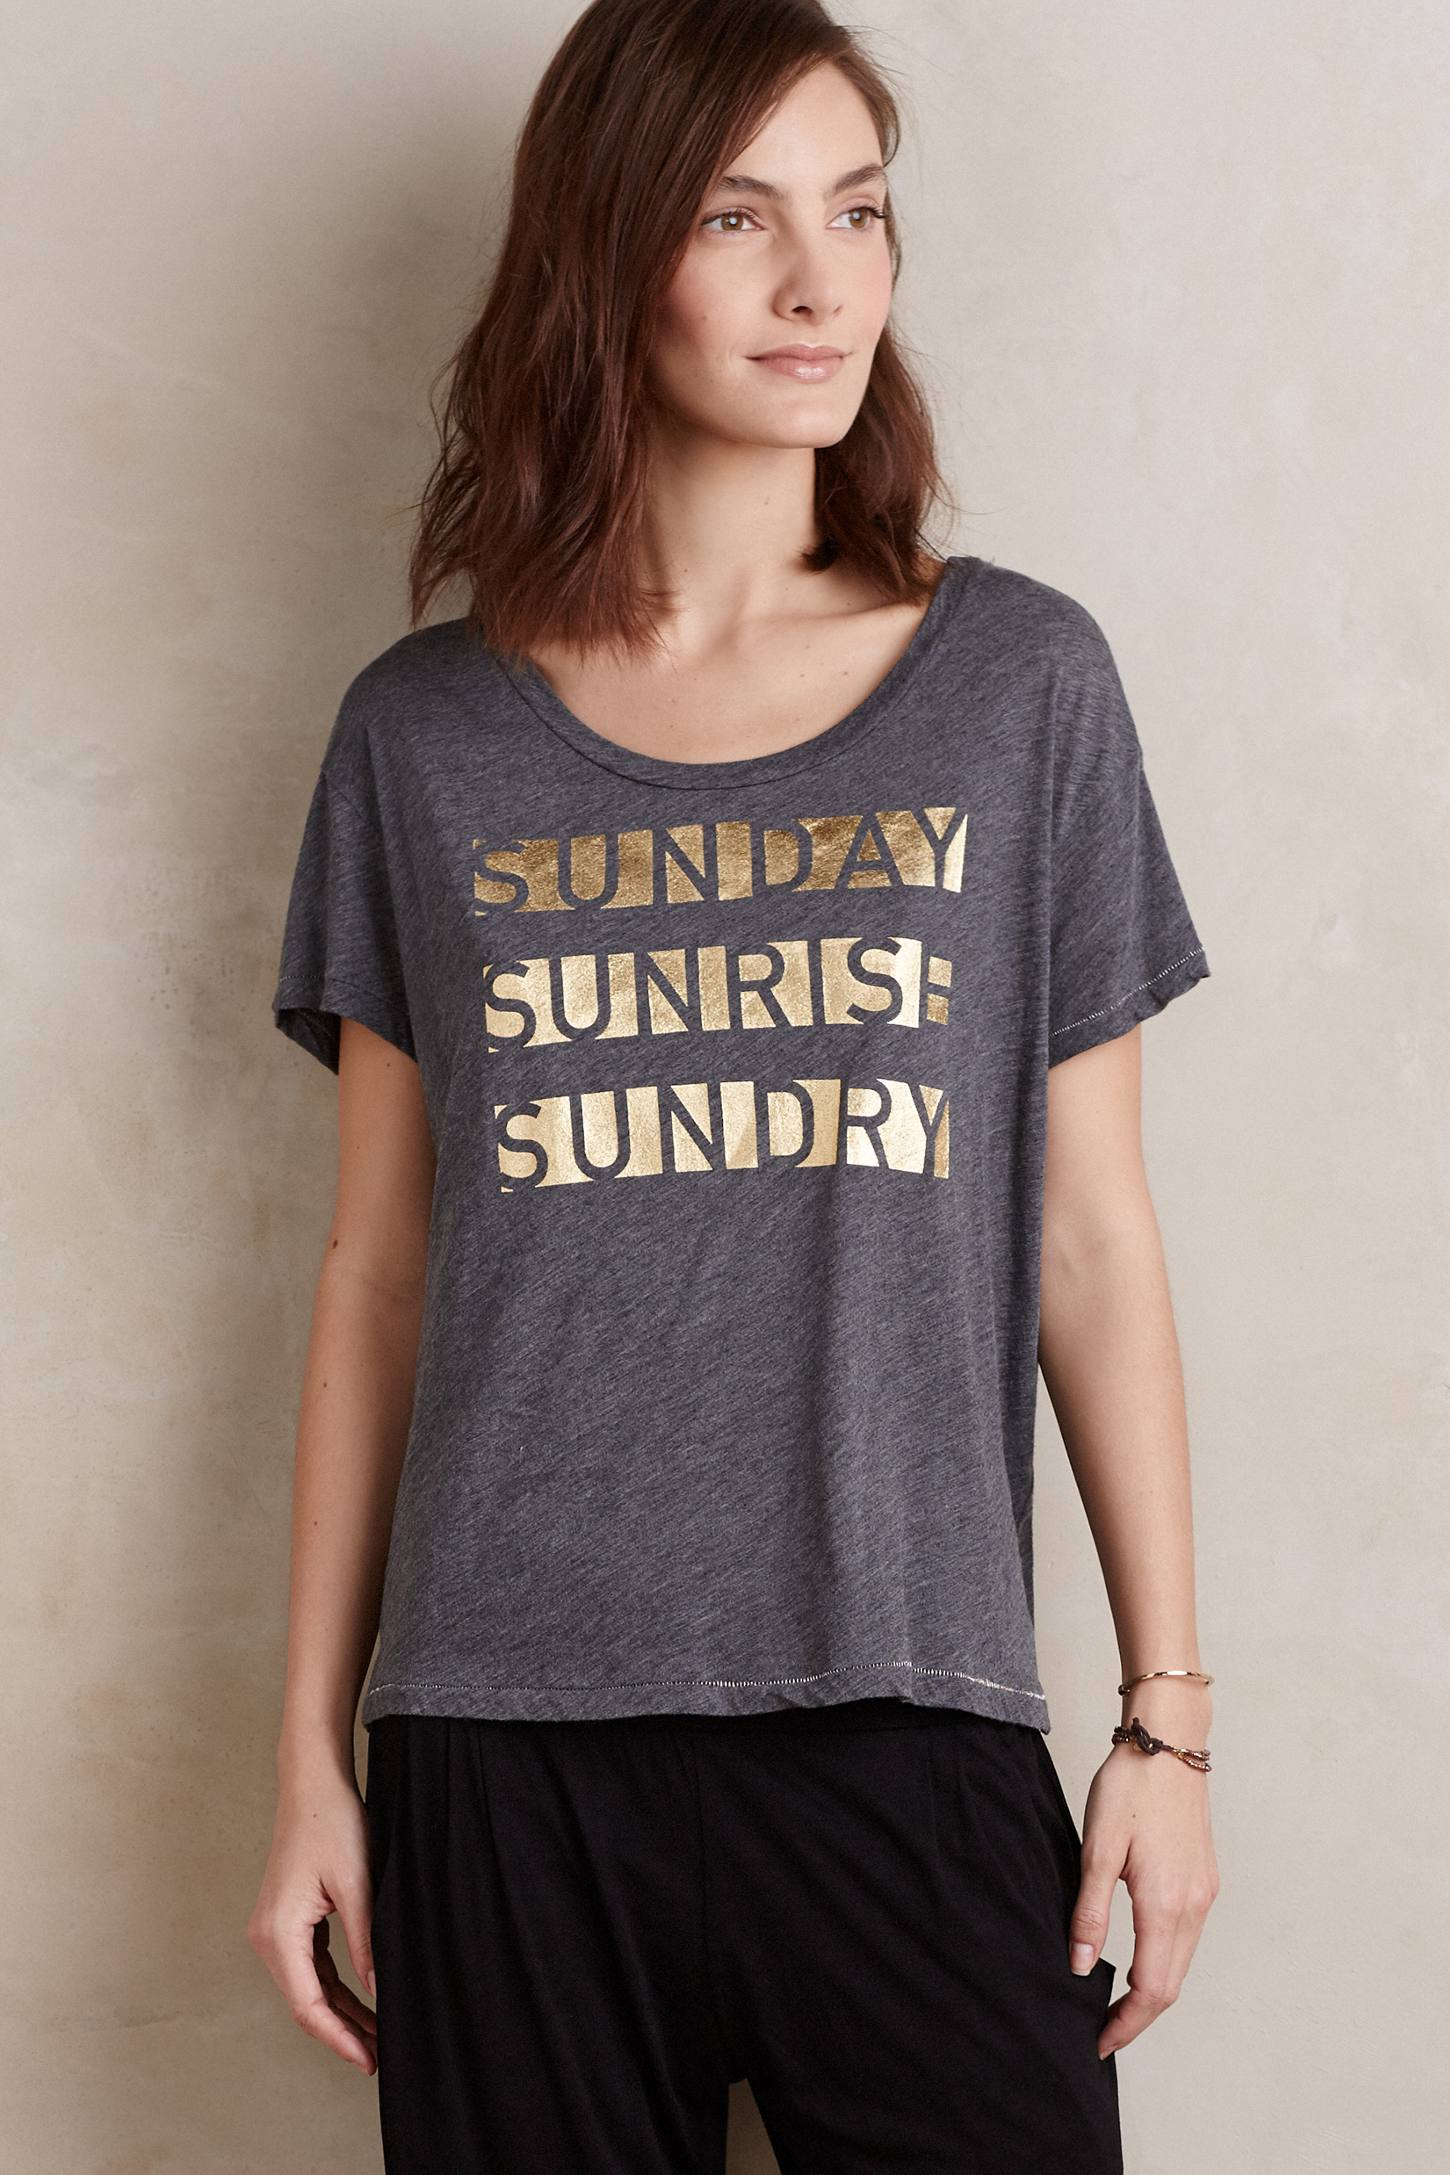 Sunday Sunrise Tee